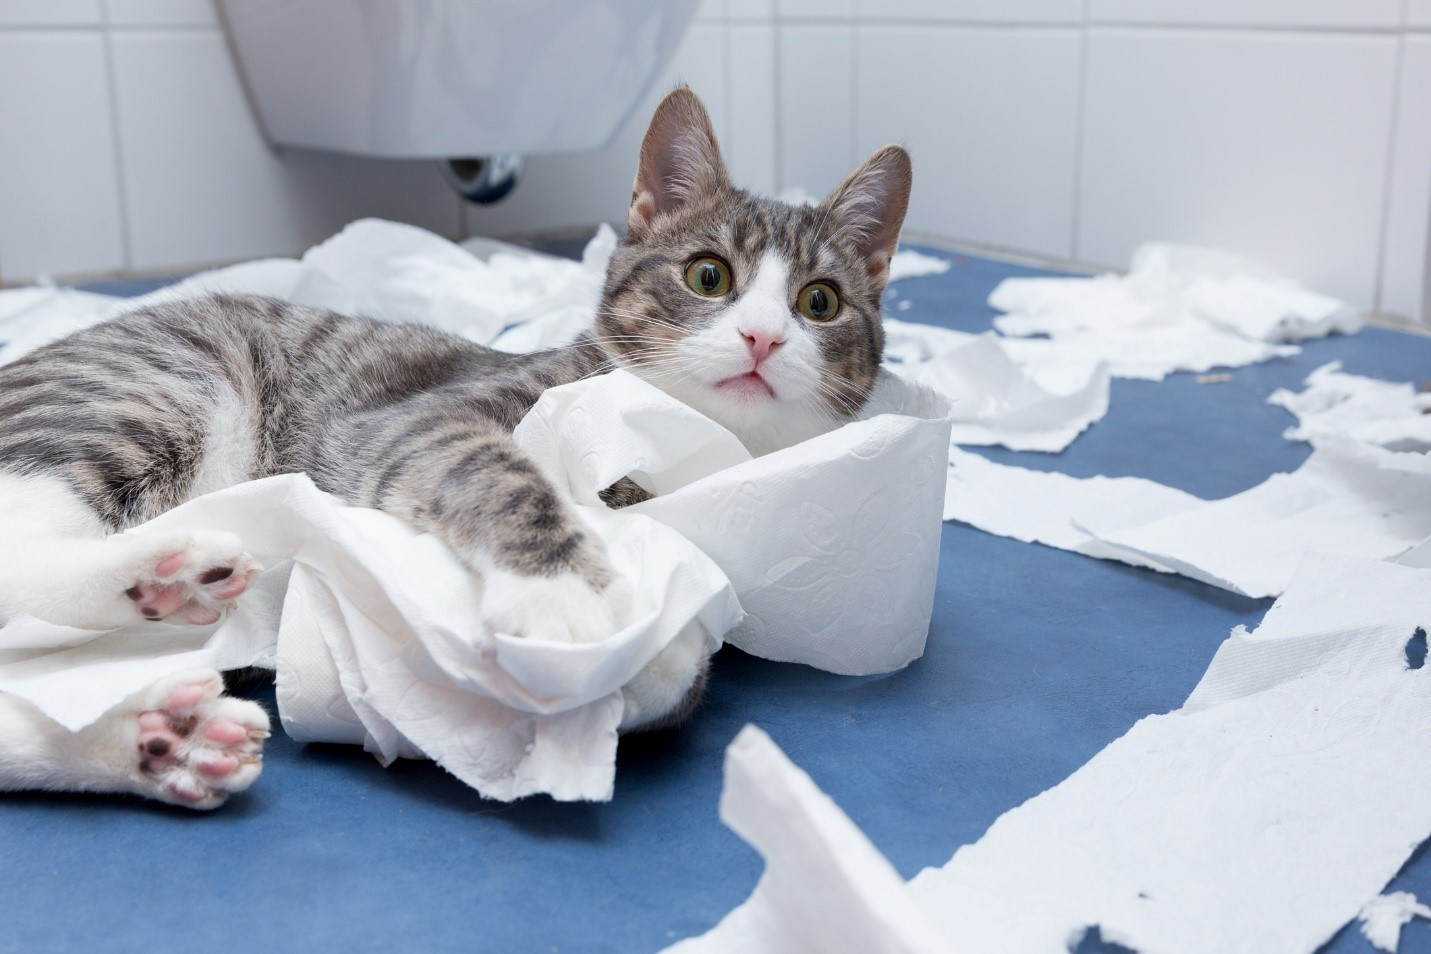 RV toilet paper - cat ruining rolls of toilet paper